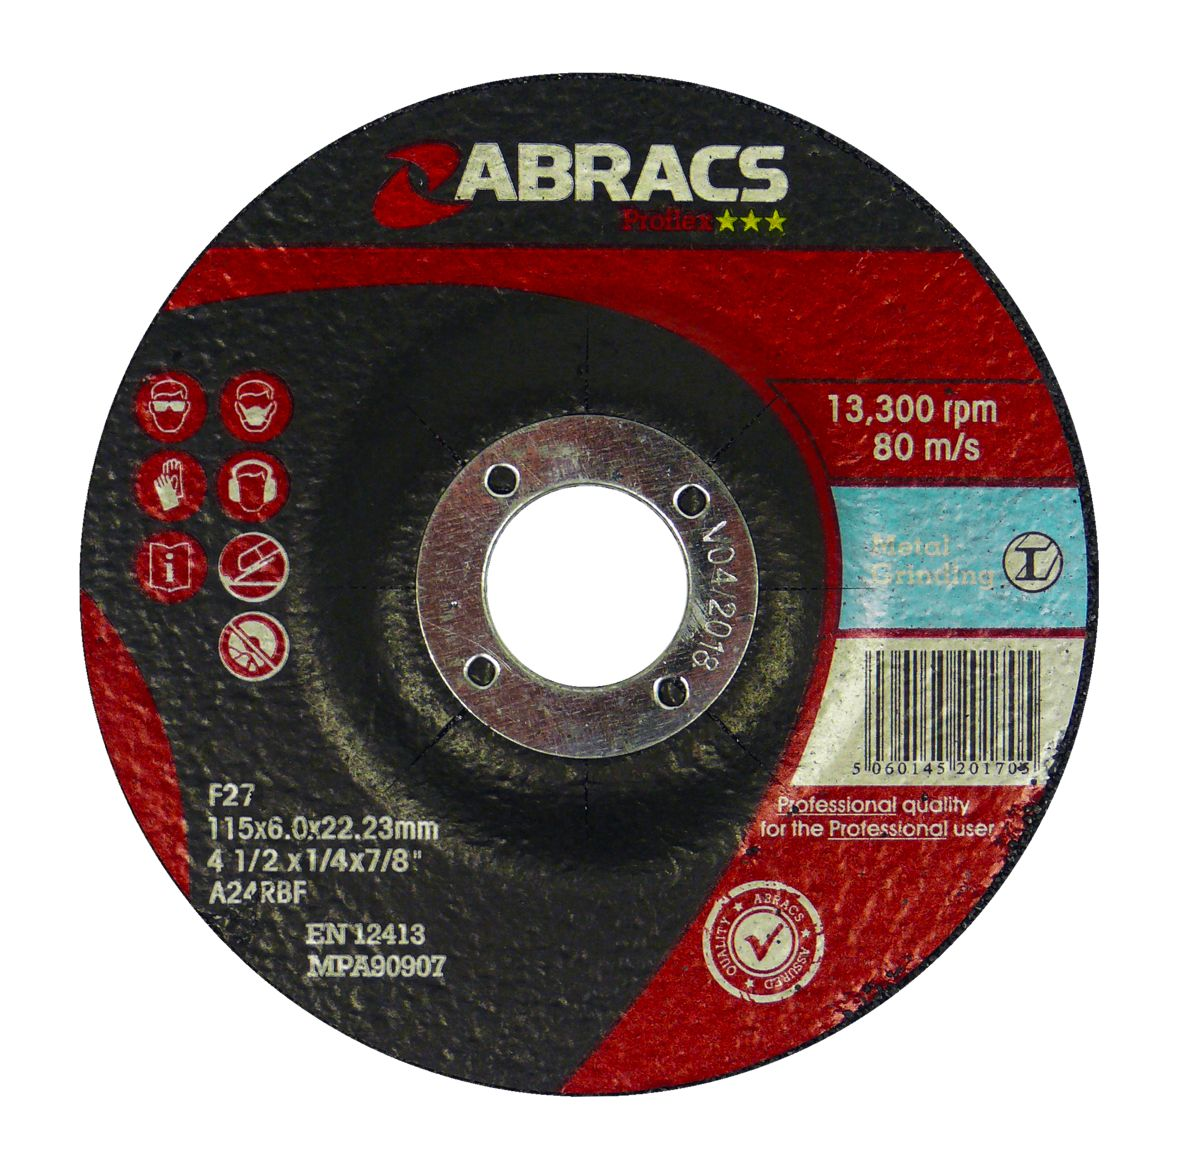 METAL GRINDING DISC - DPC 115 X 6.0 X 22.23MM